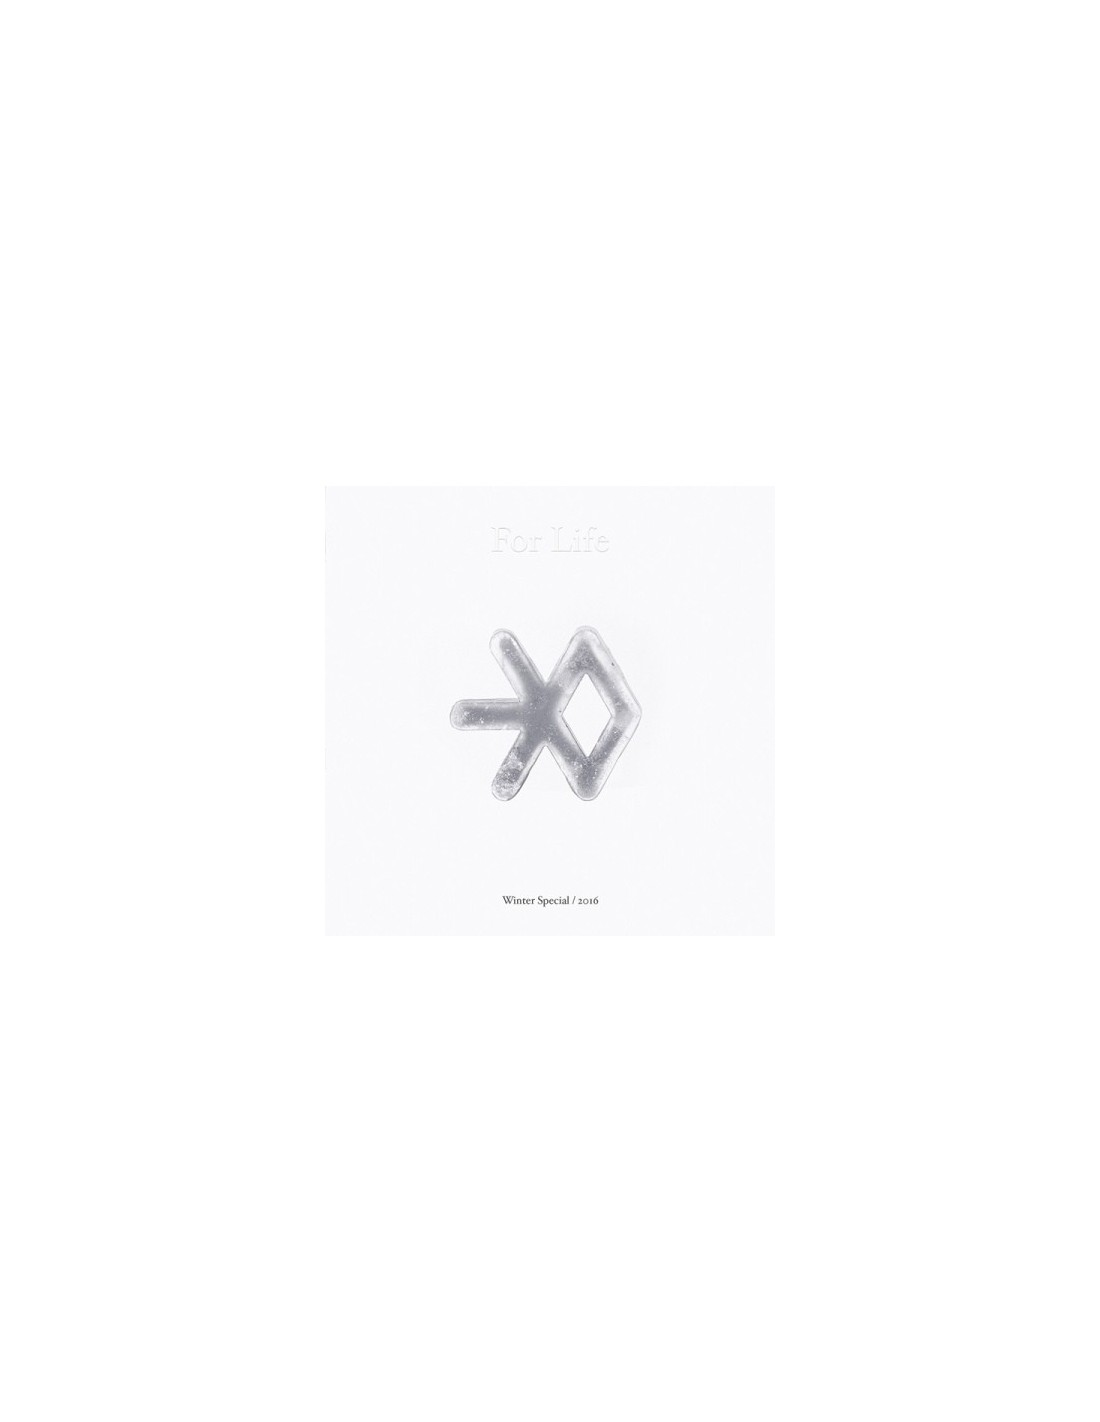 exo winter special album 2016 2cd poster. Black Bedroom Furniture Sets. Home Design Ideas